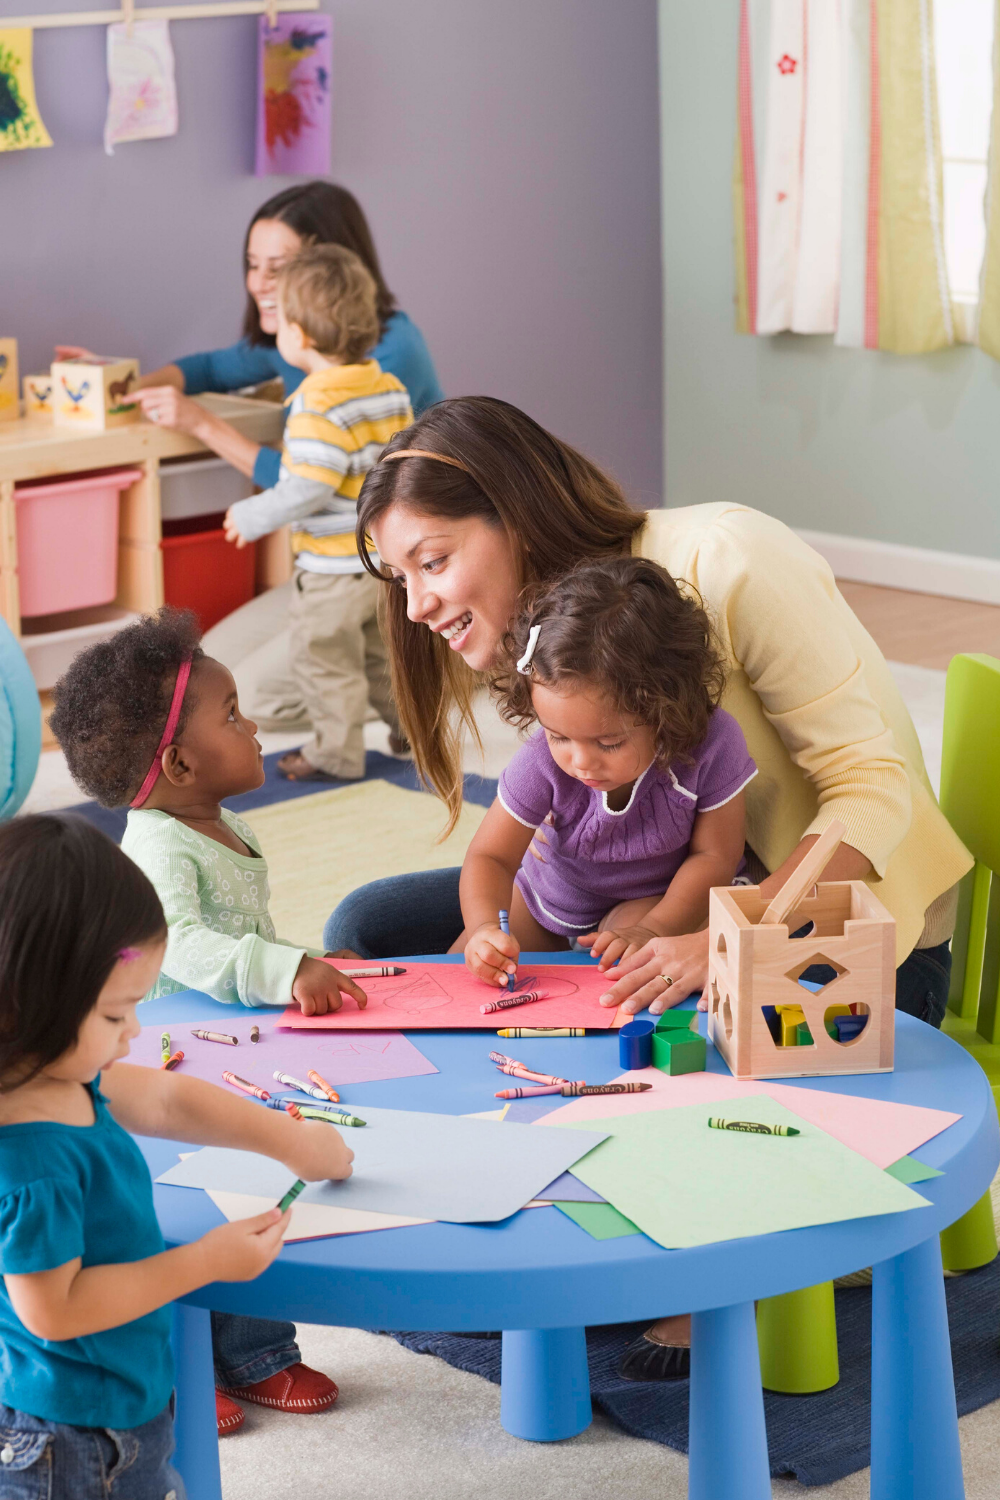 Choosing Between Childcare Options: Finding the Best Fit For Your Child